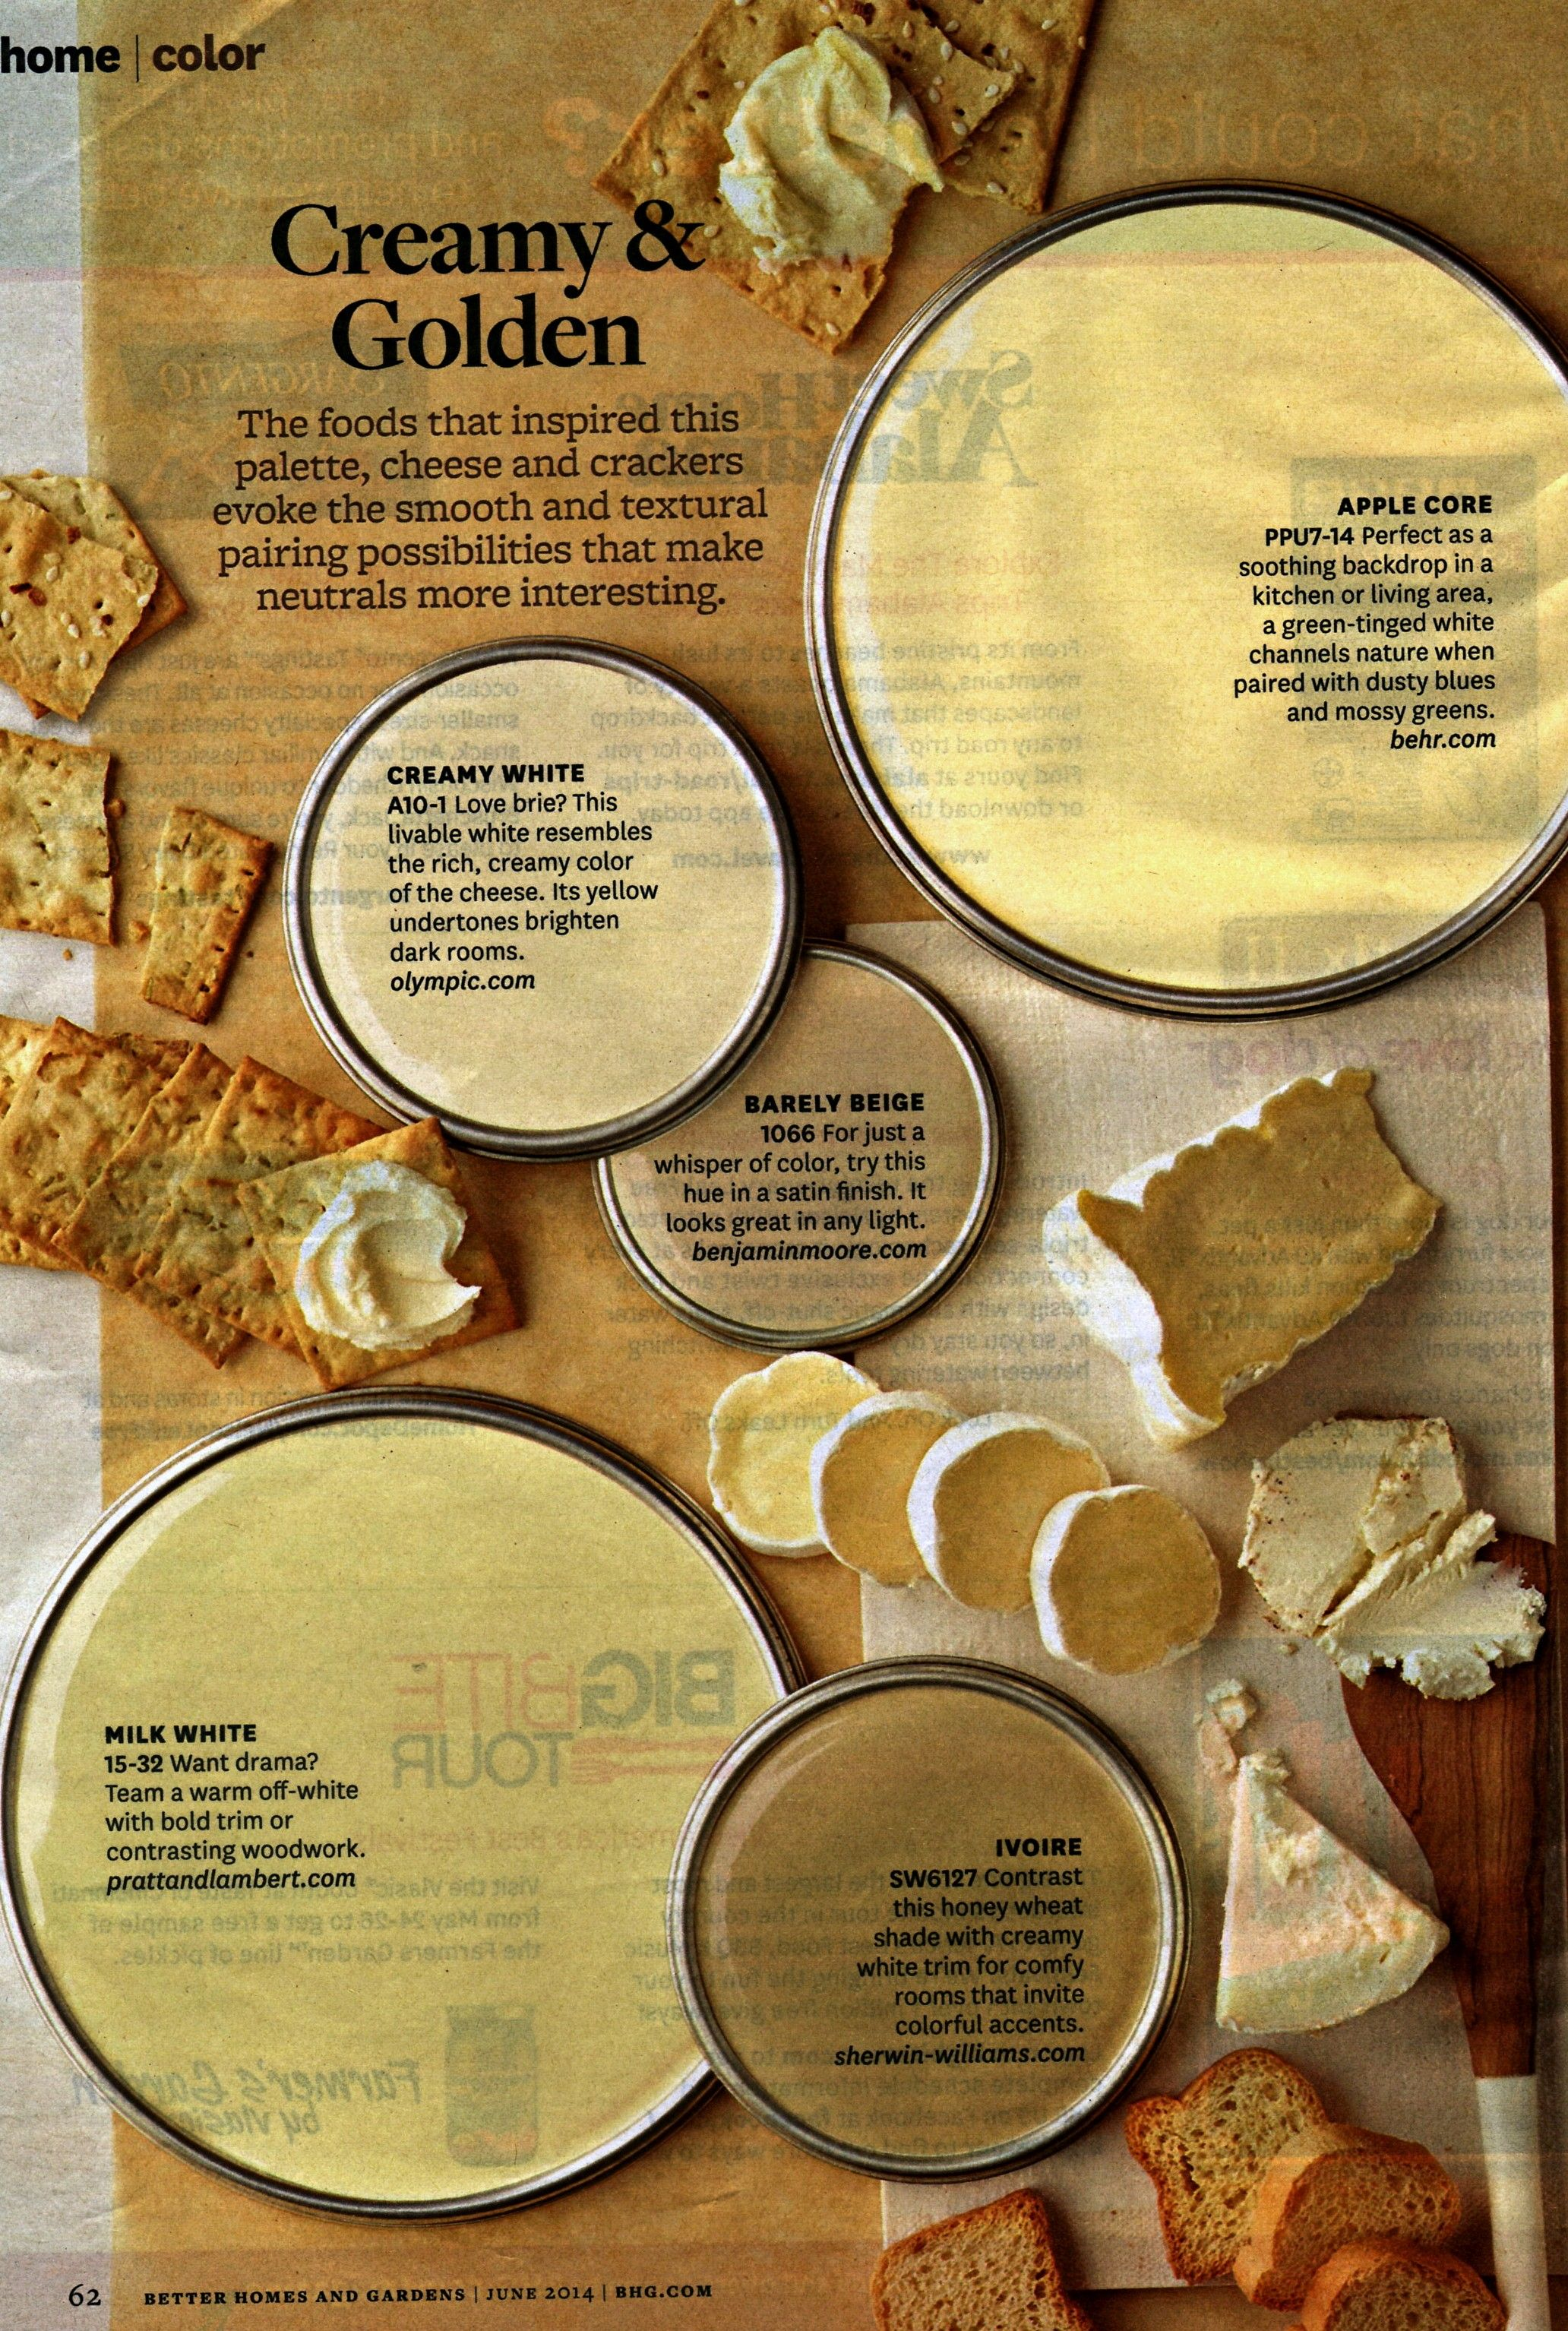 Paint Colors Creamy And Golden From Bhg Far From Perfect Because It Is Scanned And Uploaded